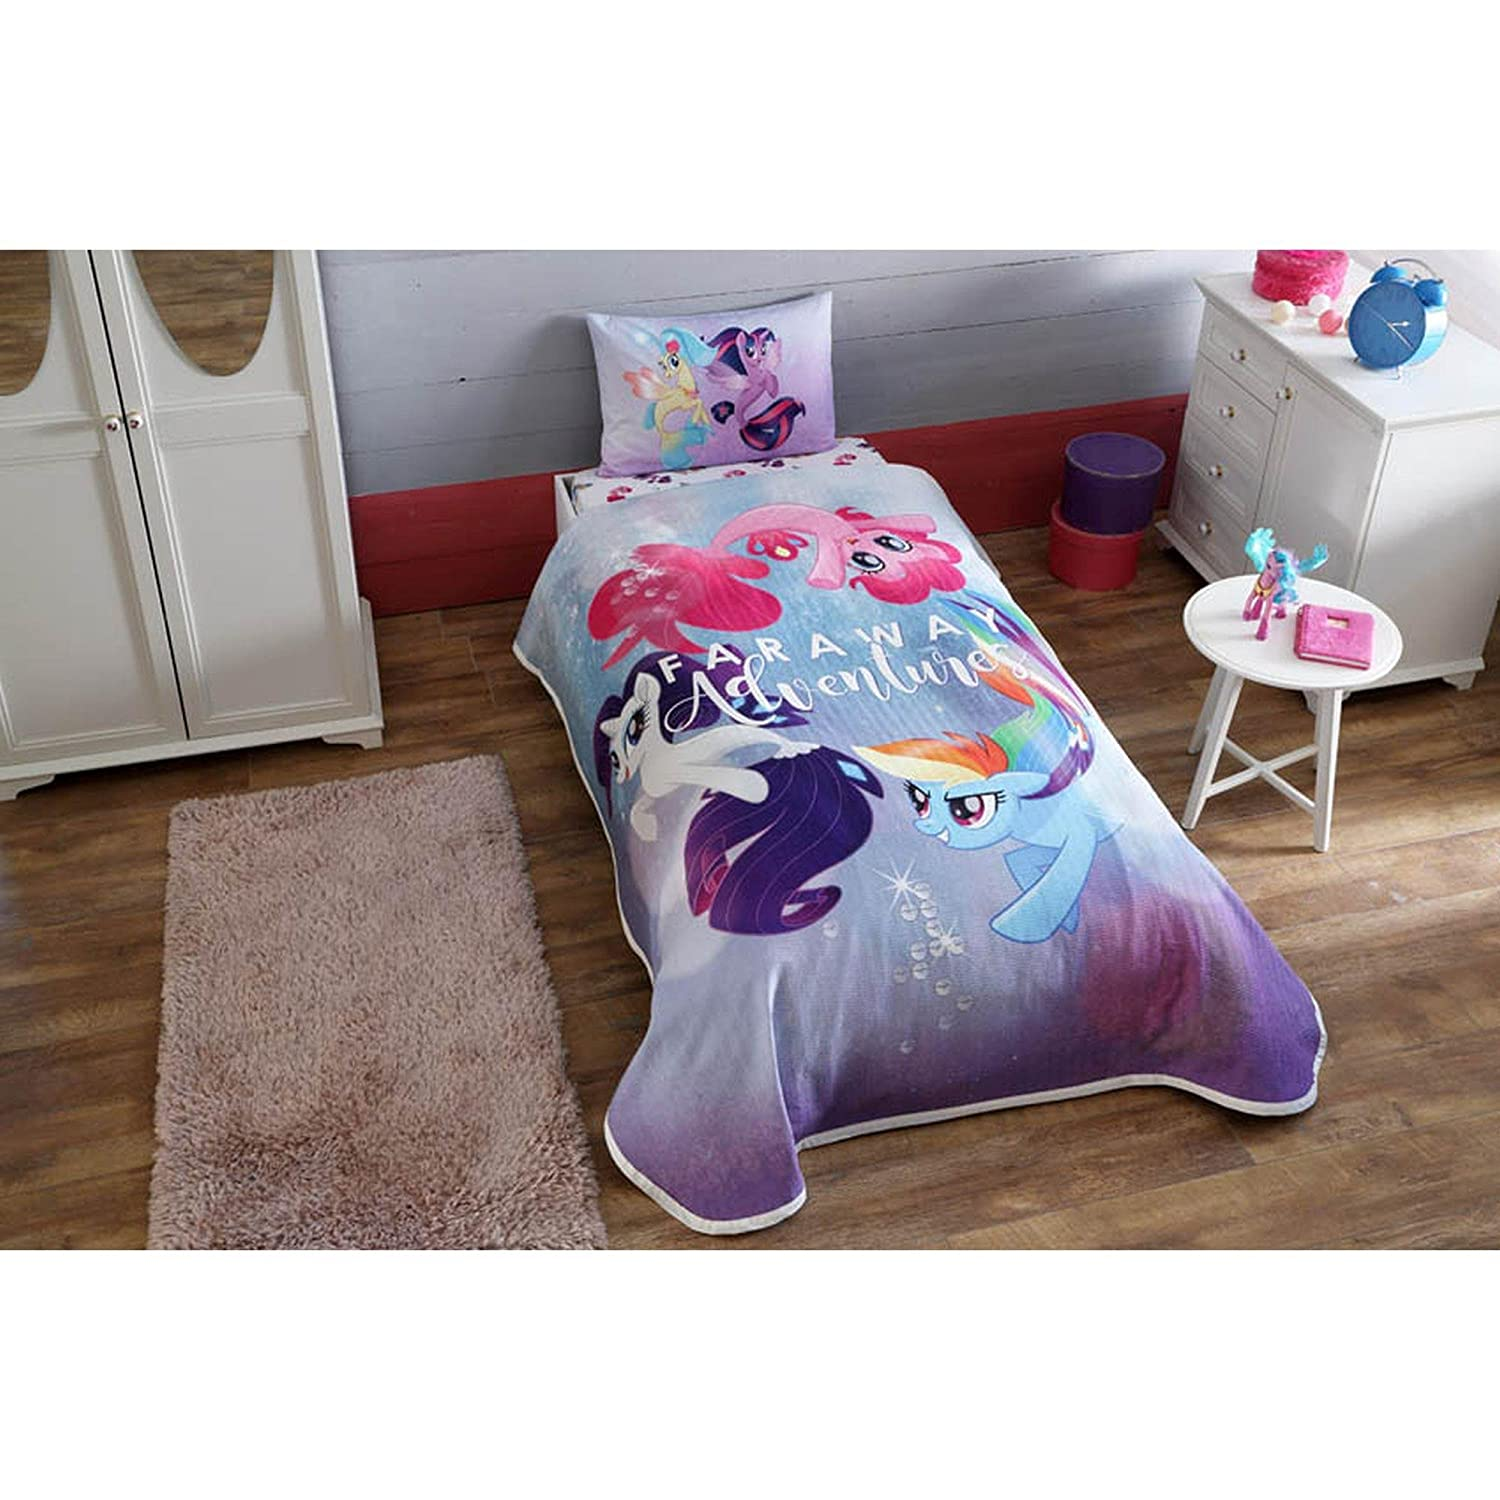 3-Piece My Little Pony Movie Licensed Cartoons Bedspread Coverlet (Pique) Set, 100% Pure Cotton Luxury, Children Teenager Single Size TAC 60175649